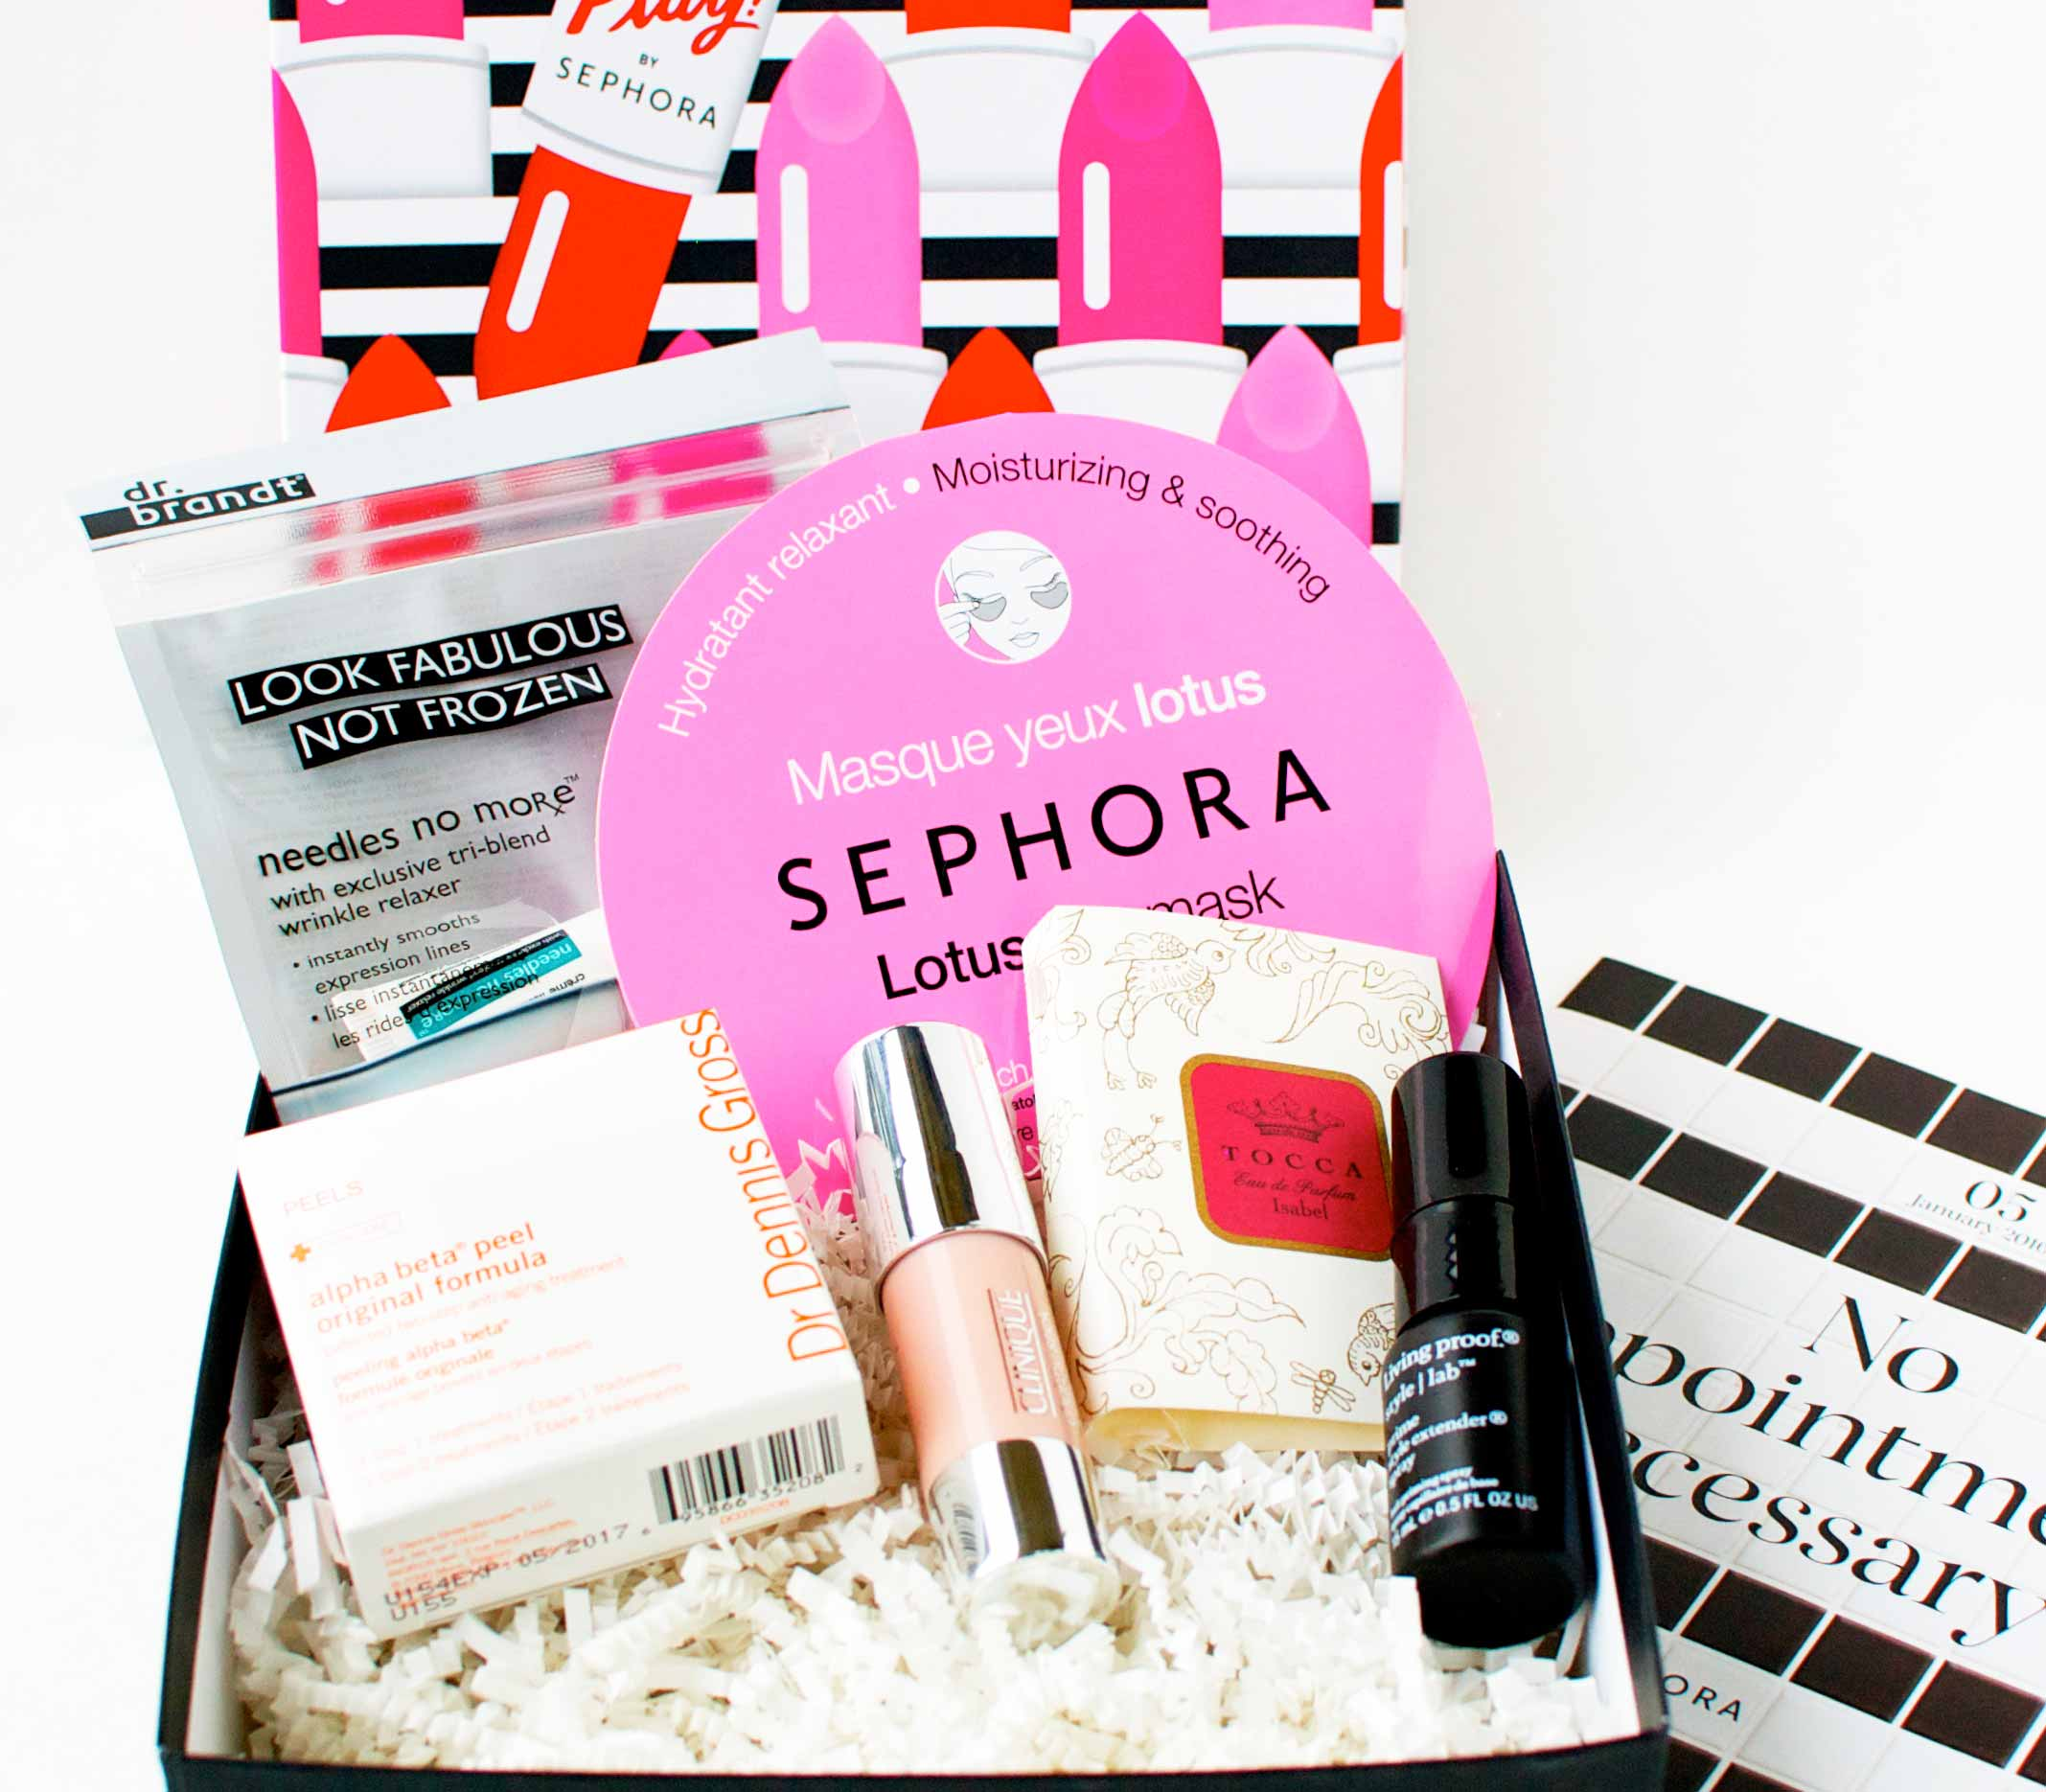 Sephora Play! - Another shameless confession for my inability to get on any band-wagon ever, but I have finally fallen into the subscription box gig as a monthly gift to myself. Our kick-ass beauty editor, Yeju, was raving to me one Nella lunch date about Sephora's subscription box over any other, so convincingly that I ordered my box mid-margarita-pizza-bite. Though I'm still a newbie to this world, I'm very much a believer in the ~treat yourself~ mindset, and a little gift in the mail every month keeps me excited and eager to try new products.Image via Paisley & Krish.